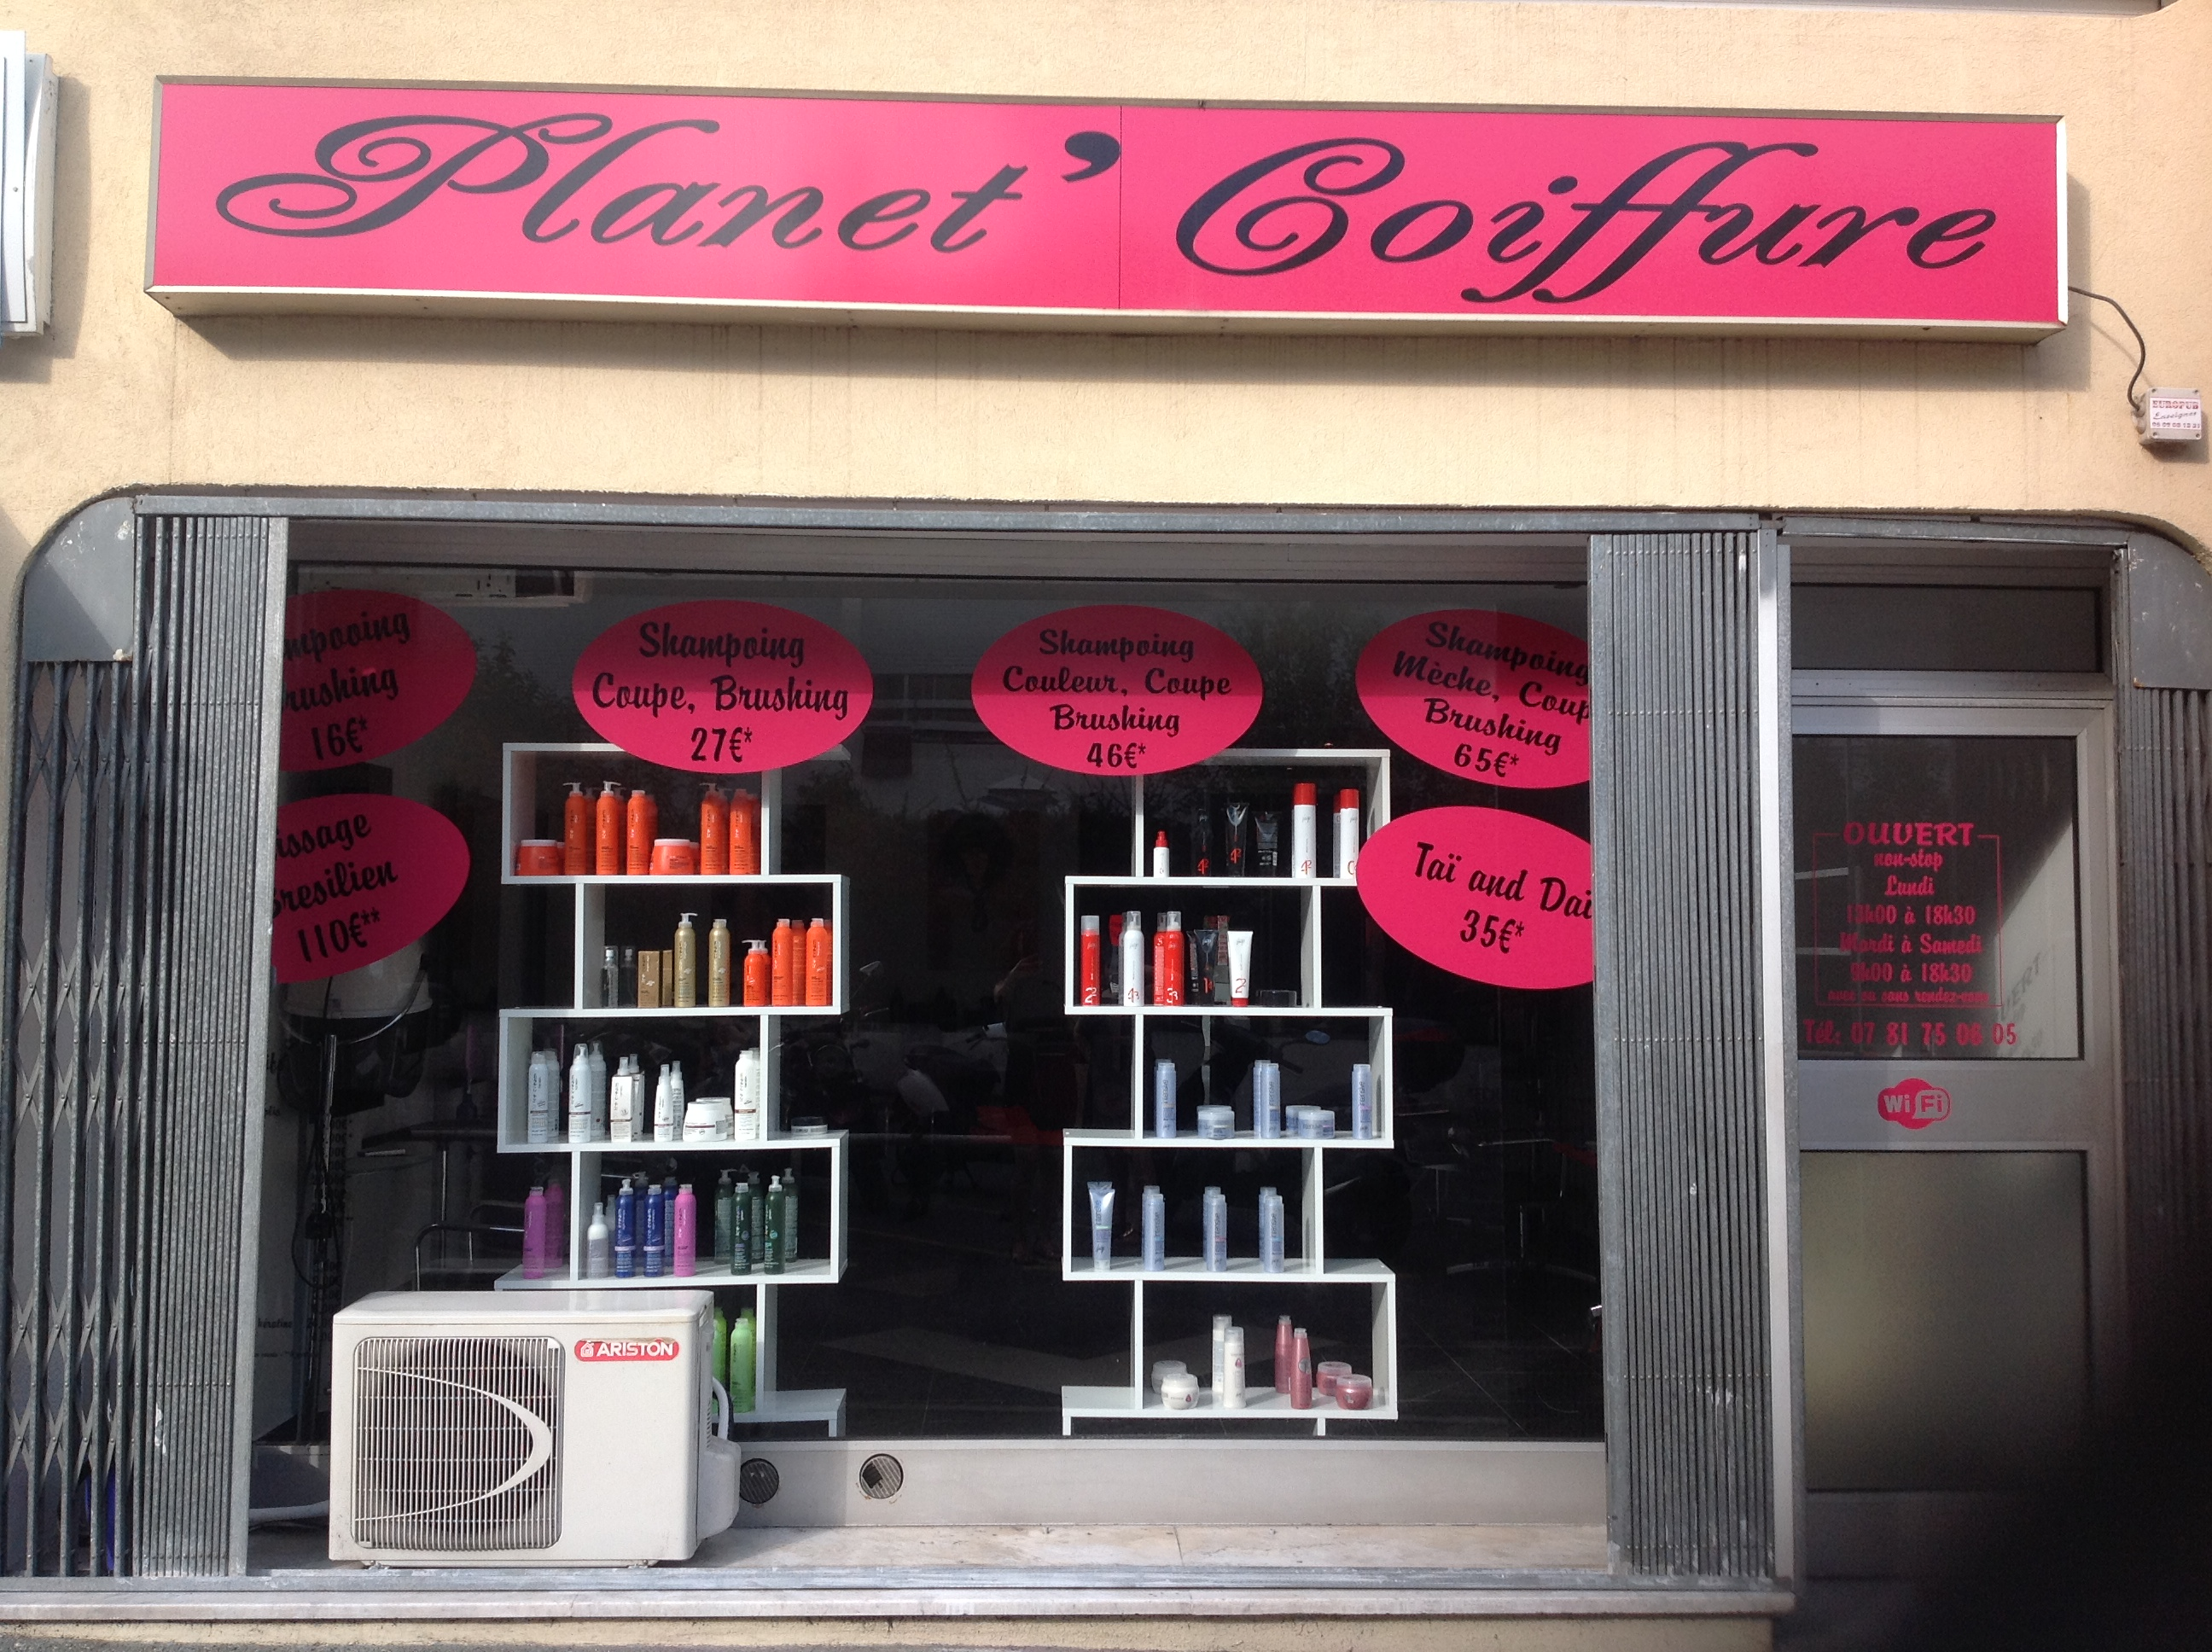 Planet 39 coiffure nice avis tarifs horaires t l phone for Miroir coiffure st augustin